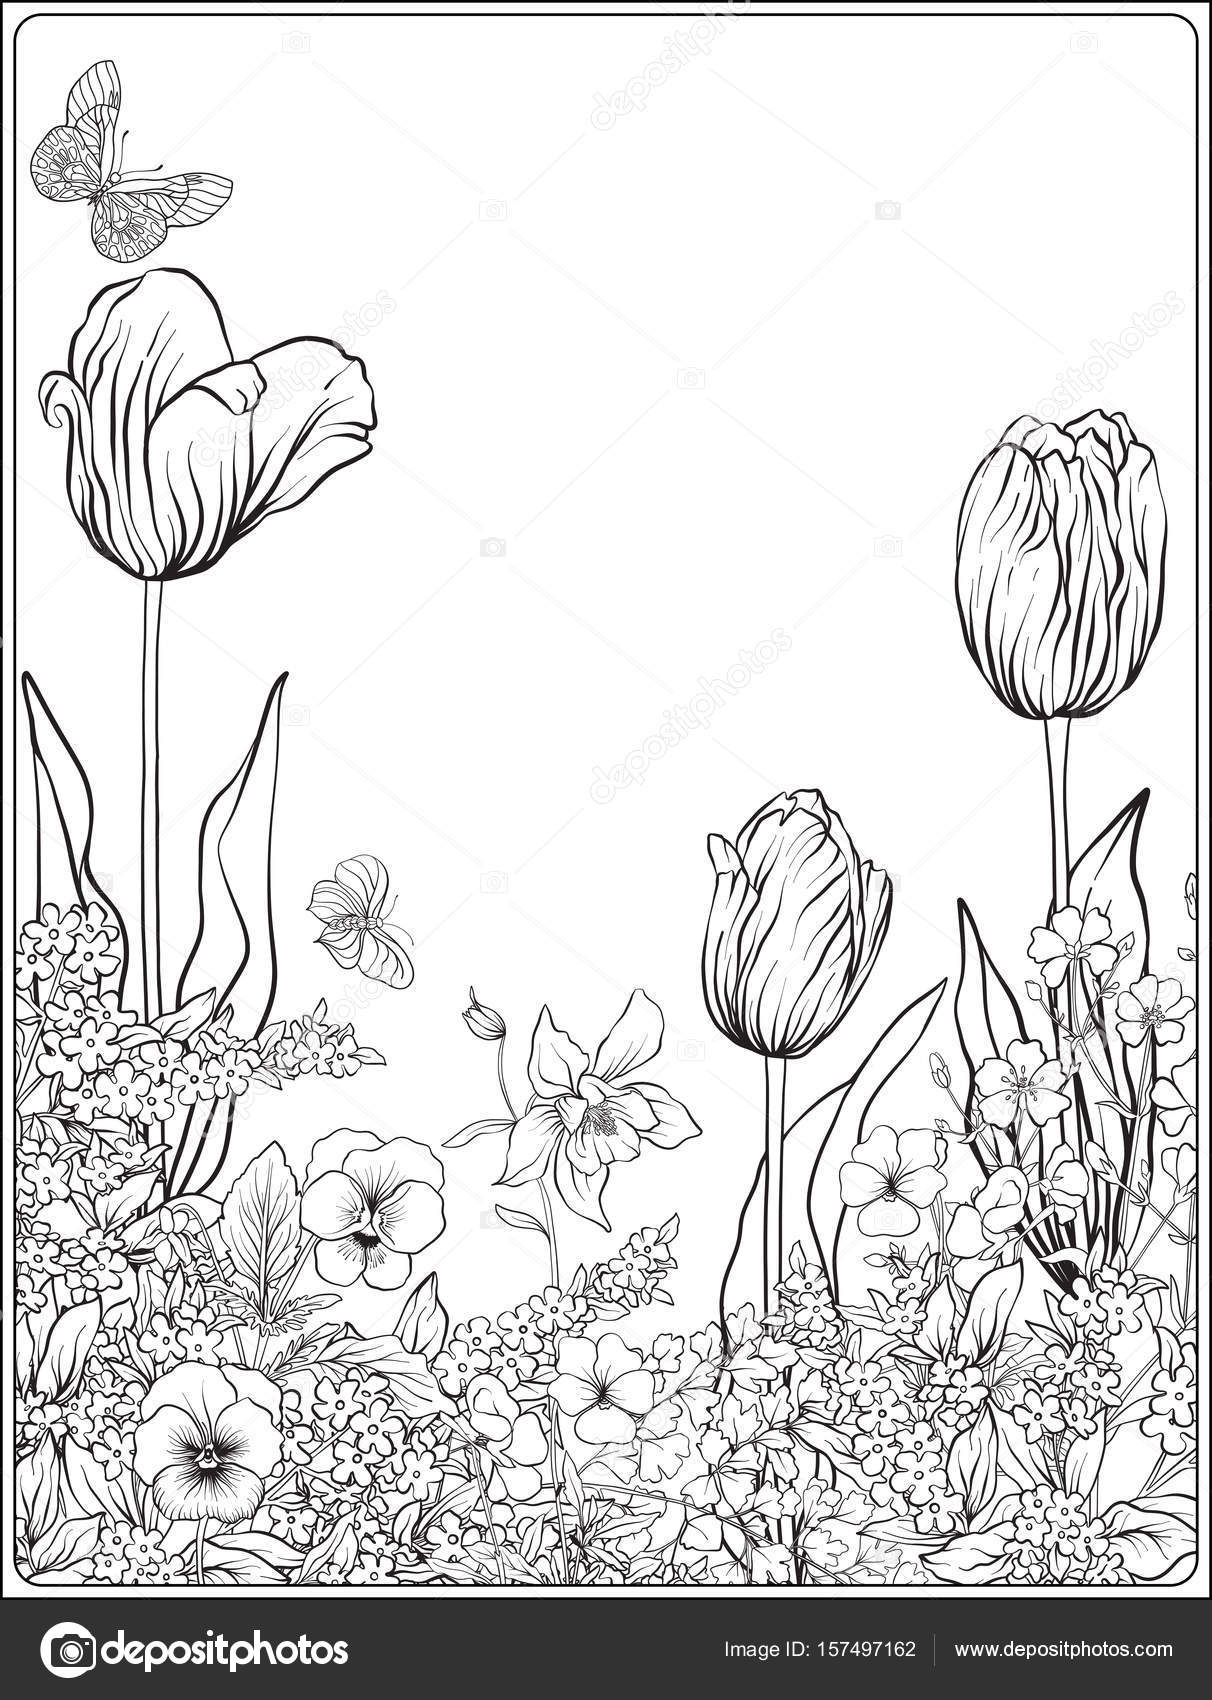 1212x1700 Composition With Spring Flowers Tulips, Daffodils, Violets,